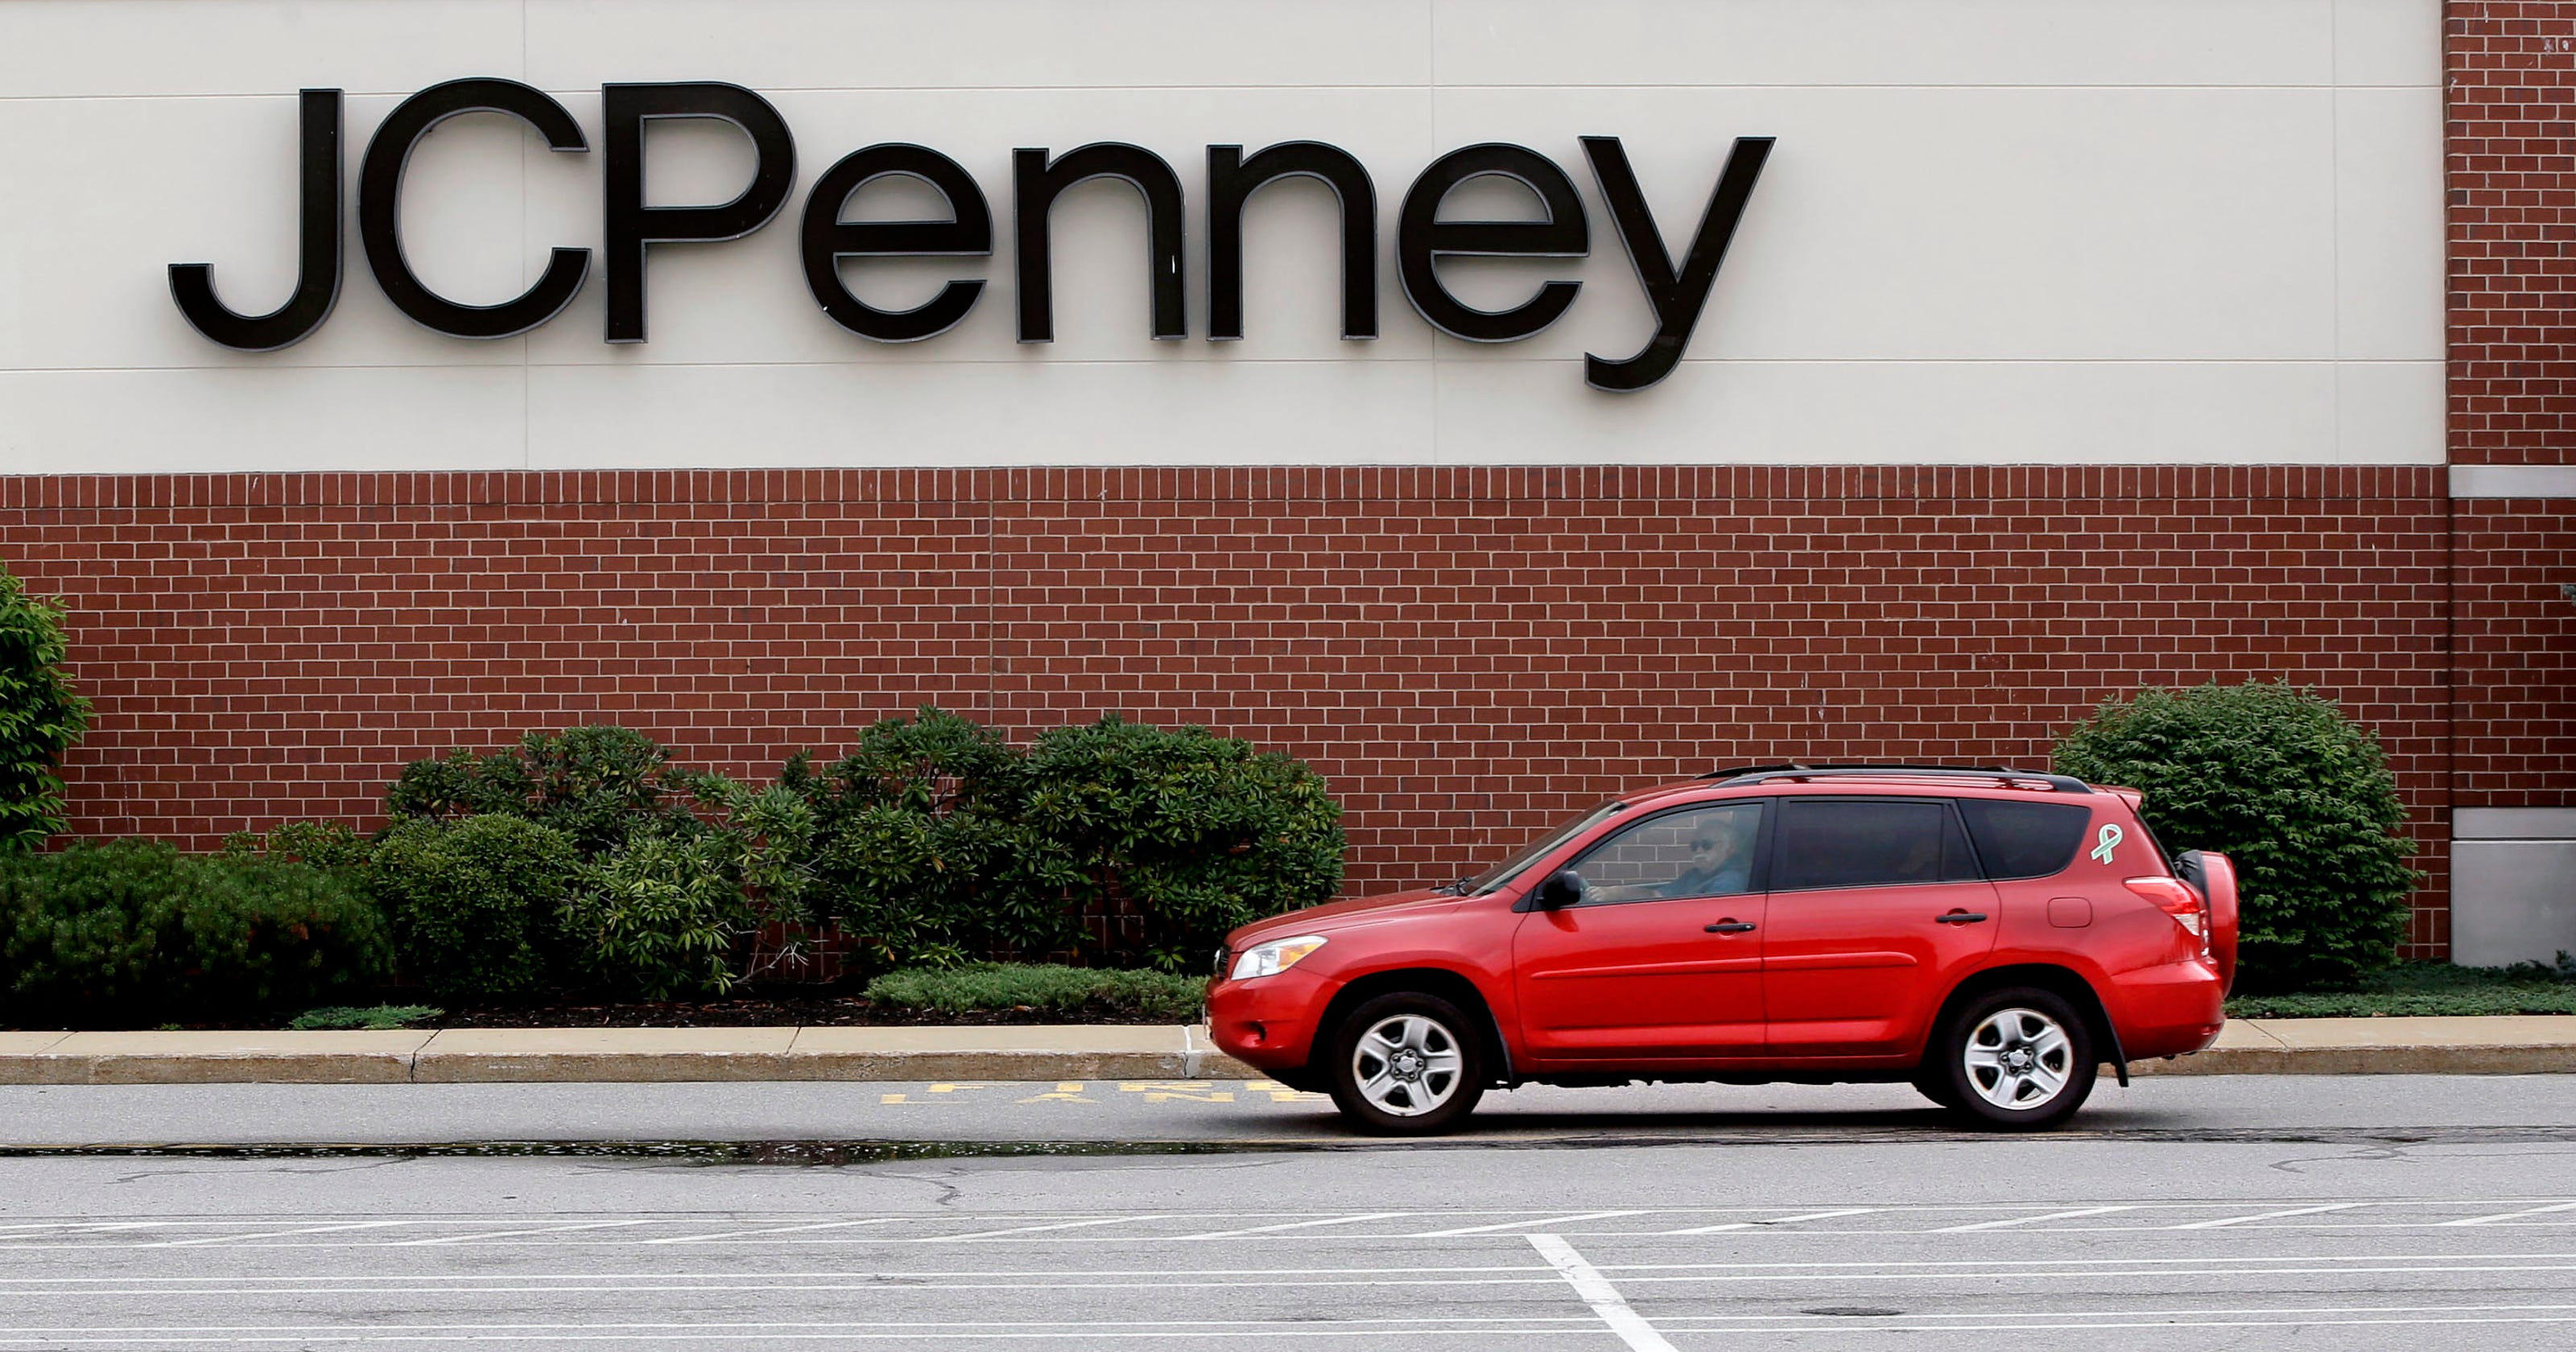 fba39fc74c3c J.C. Penney sees bright holiday sales as its fortunes rise